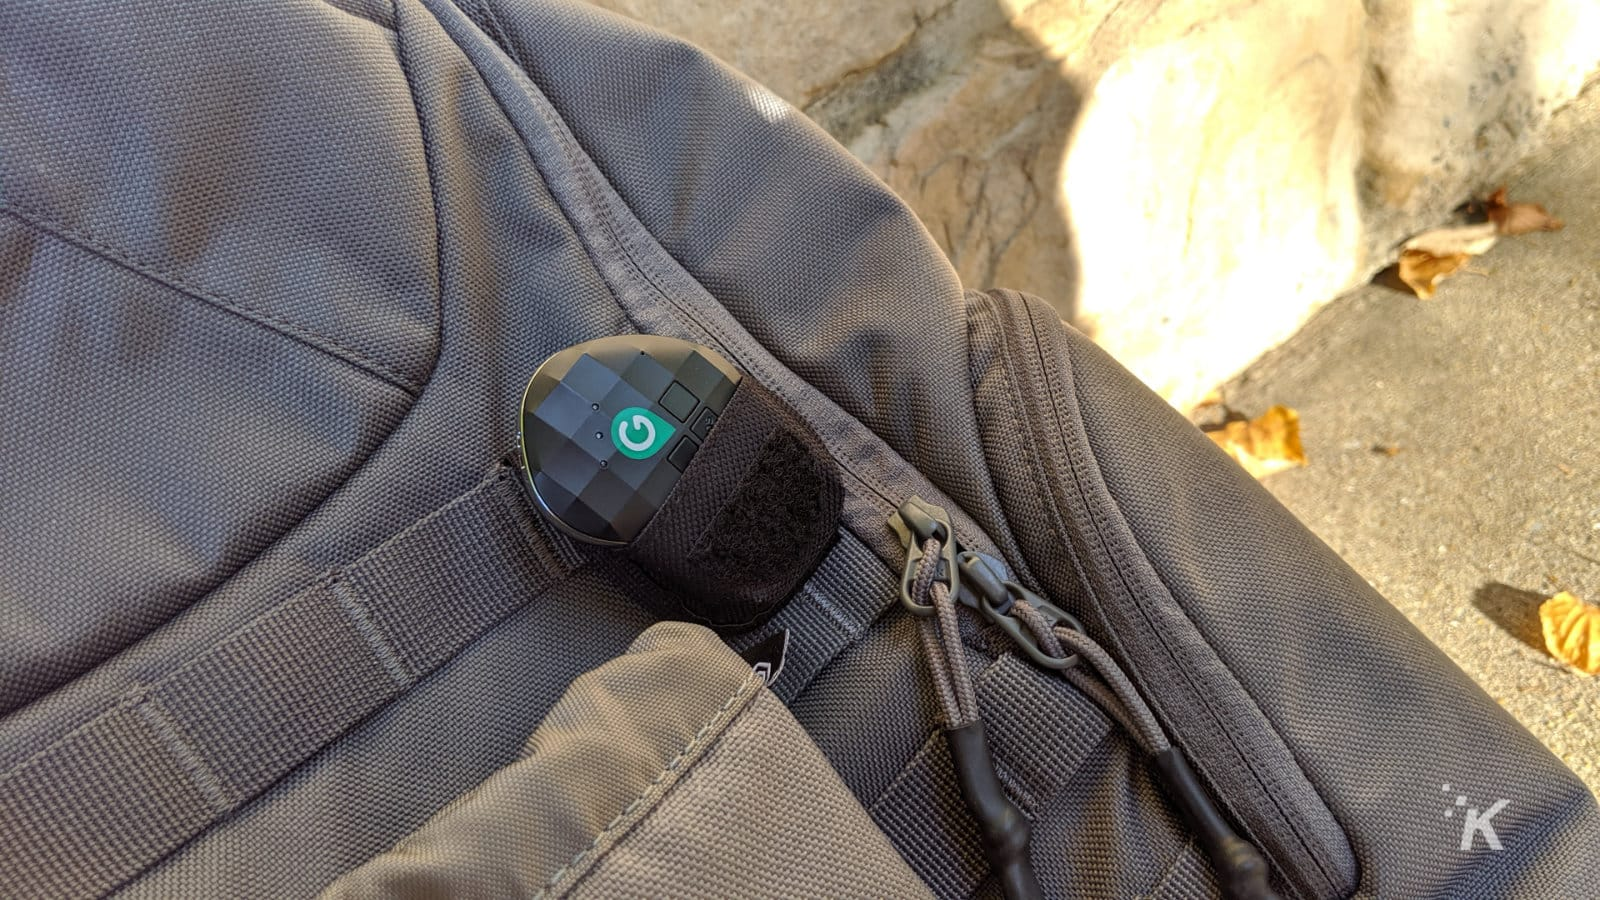 geozilla gps tracker on backpack